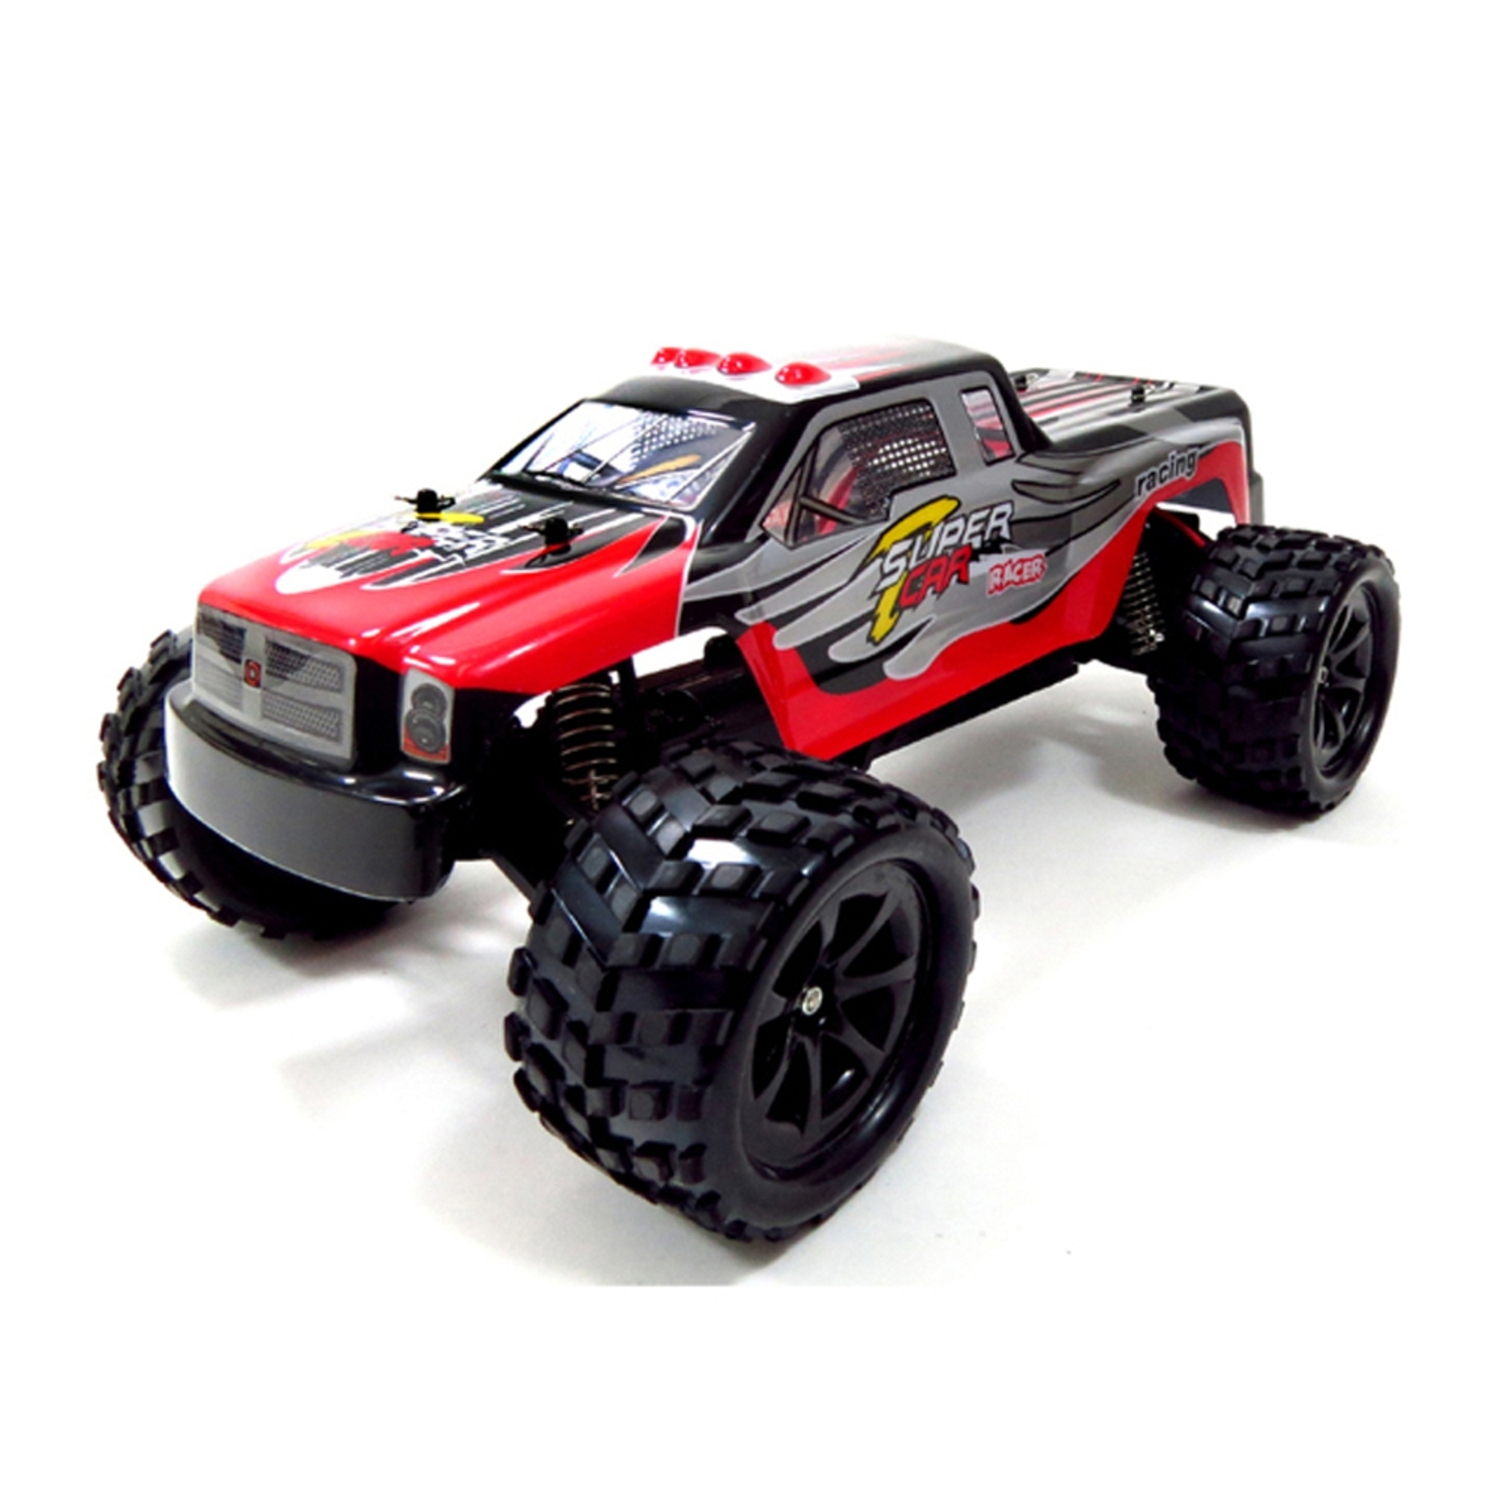 WL969 2.4G 1:12 Scale RC Buggy Truck Cross Country Racing Car High Speed Radio Control RTR Red (Gift Idea) RC... by